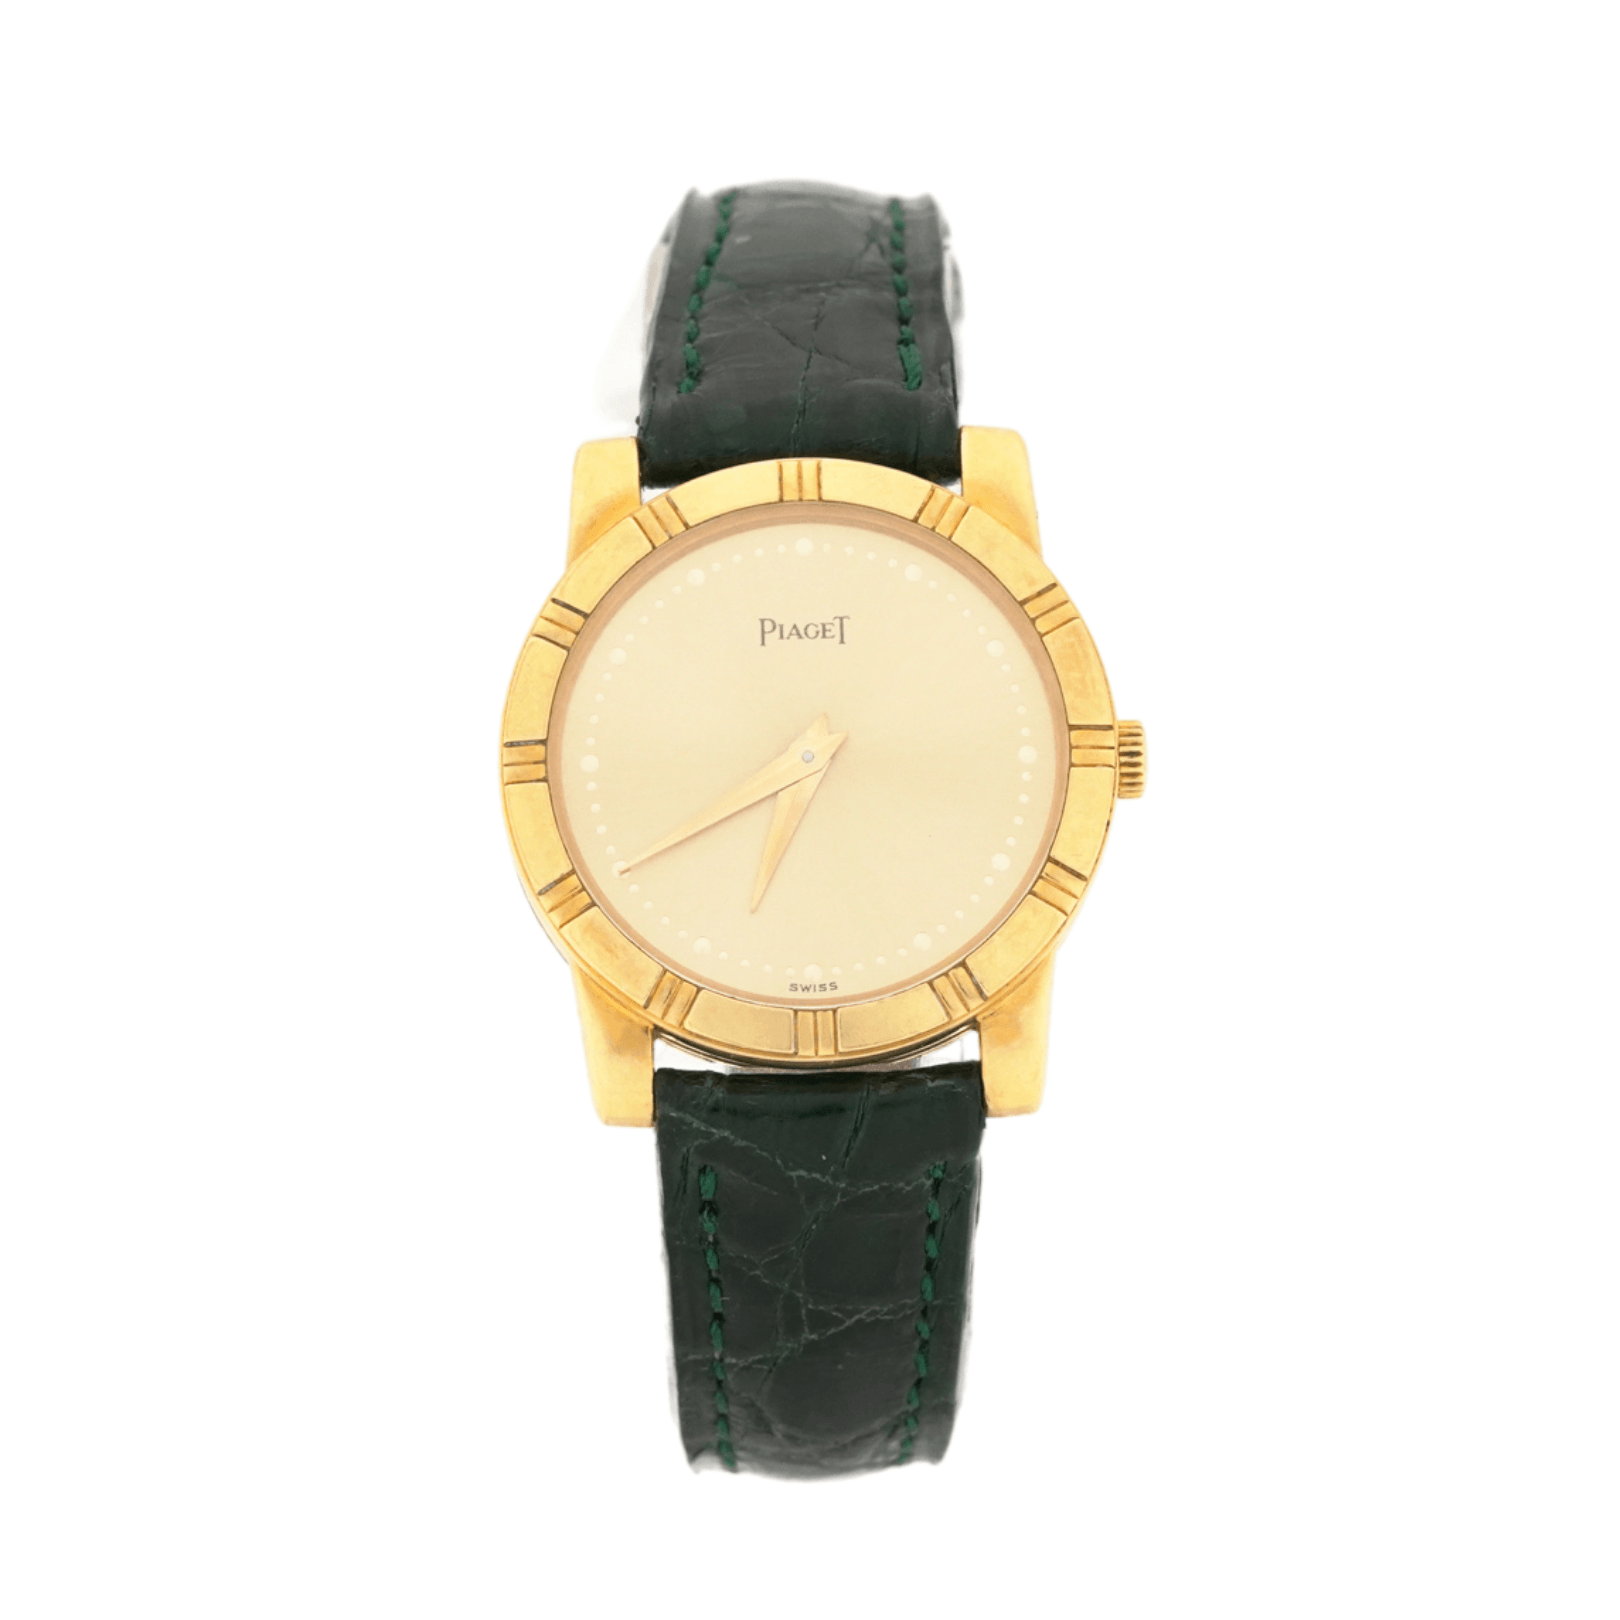 Women's Piaget Classic 80463 Swiss Quartz 18kt Yellow Gold Wrist Watch